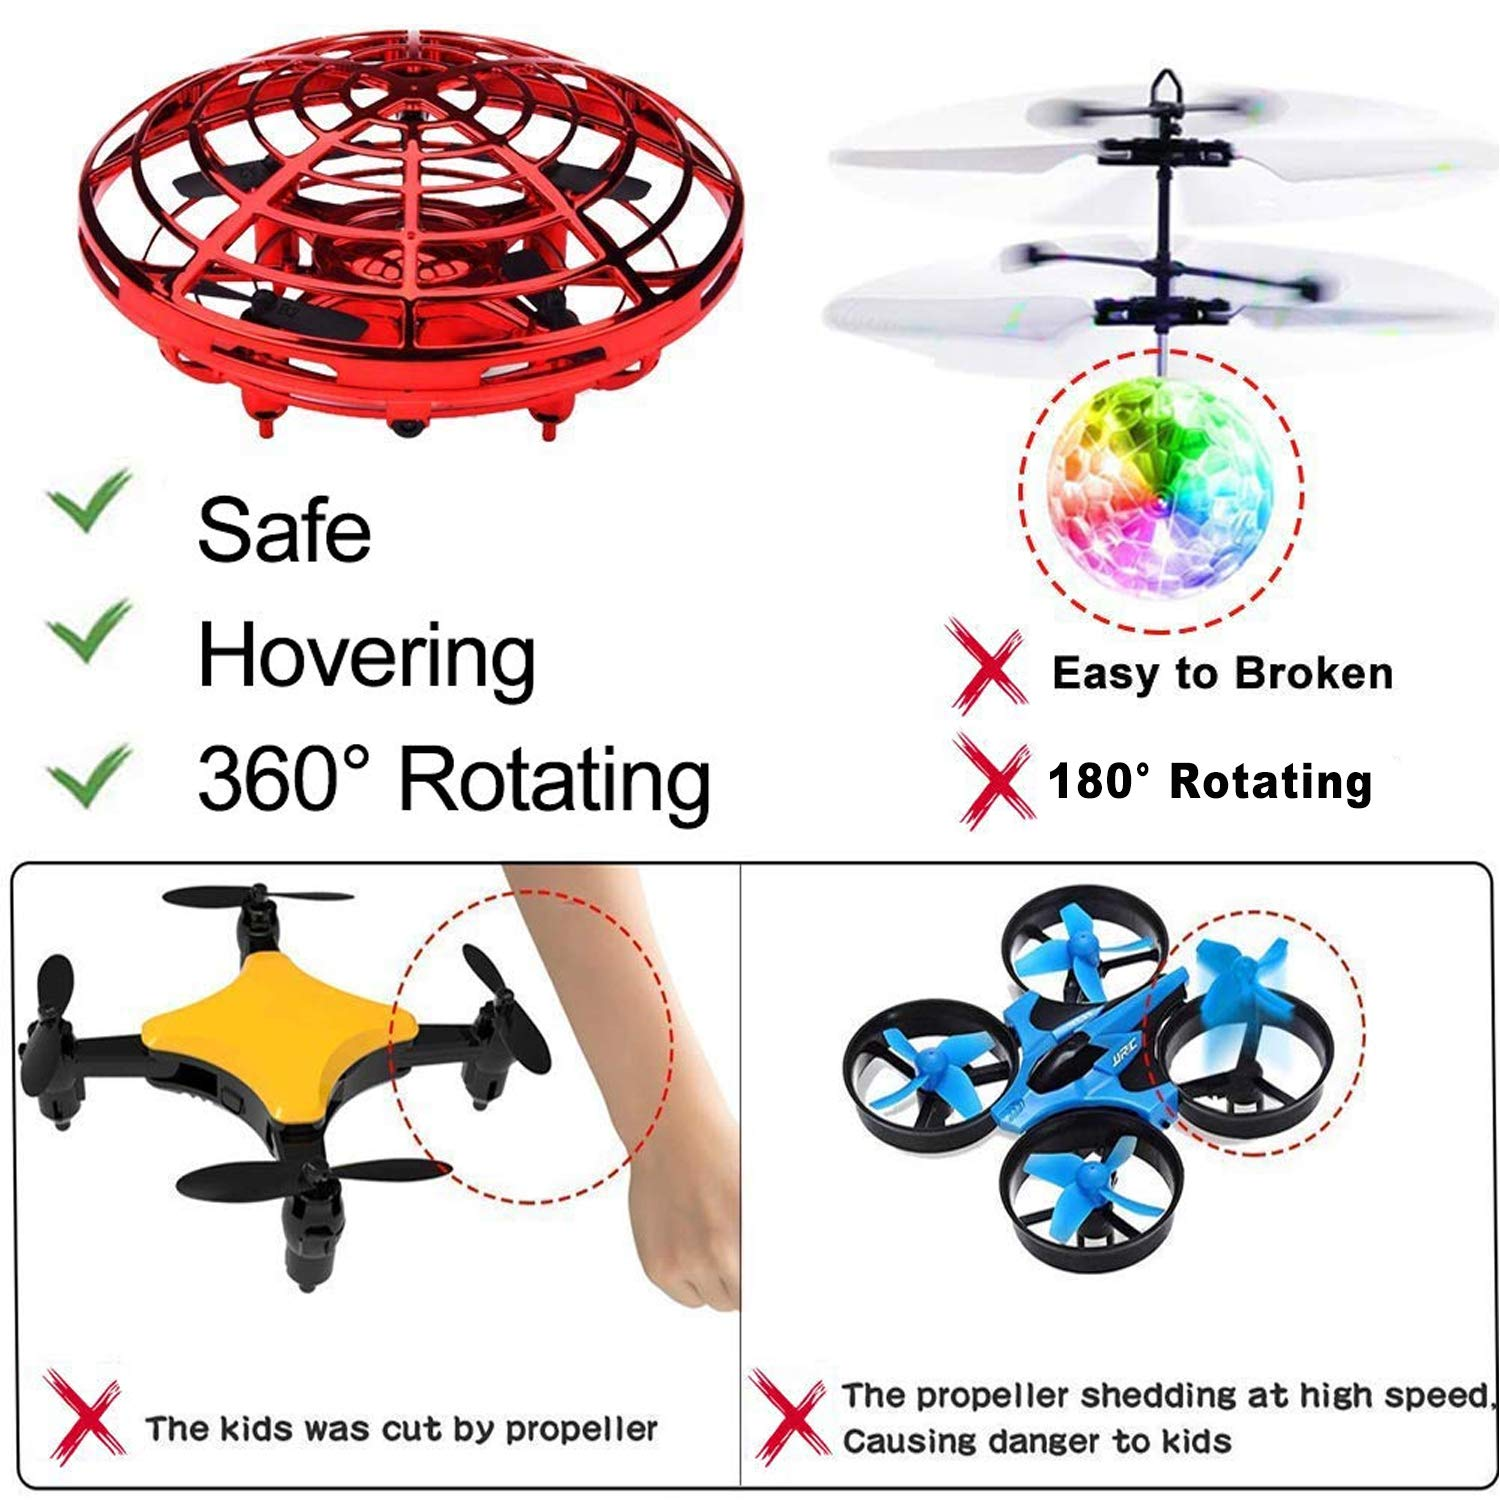 Mini Drone for Kids Beginner Hand Controlled,UFO Flying Ball Toys with 360° Rotating Hovering and LED Lights,Quadcopter Drone Toy for Kids Party Favors Indoor Outdoor,RC Helicopter Kids Birthday Gift by Camlinbo (Image #2)